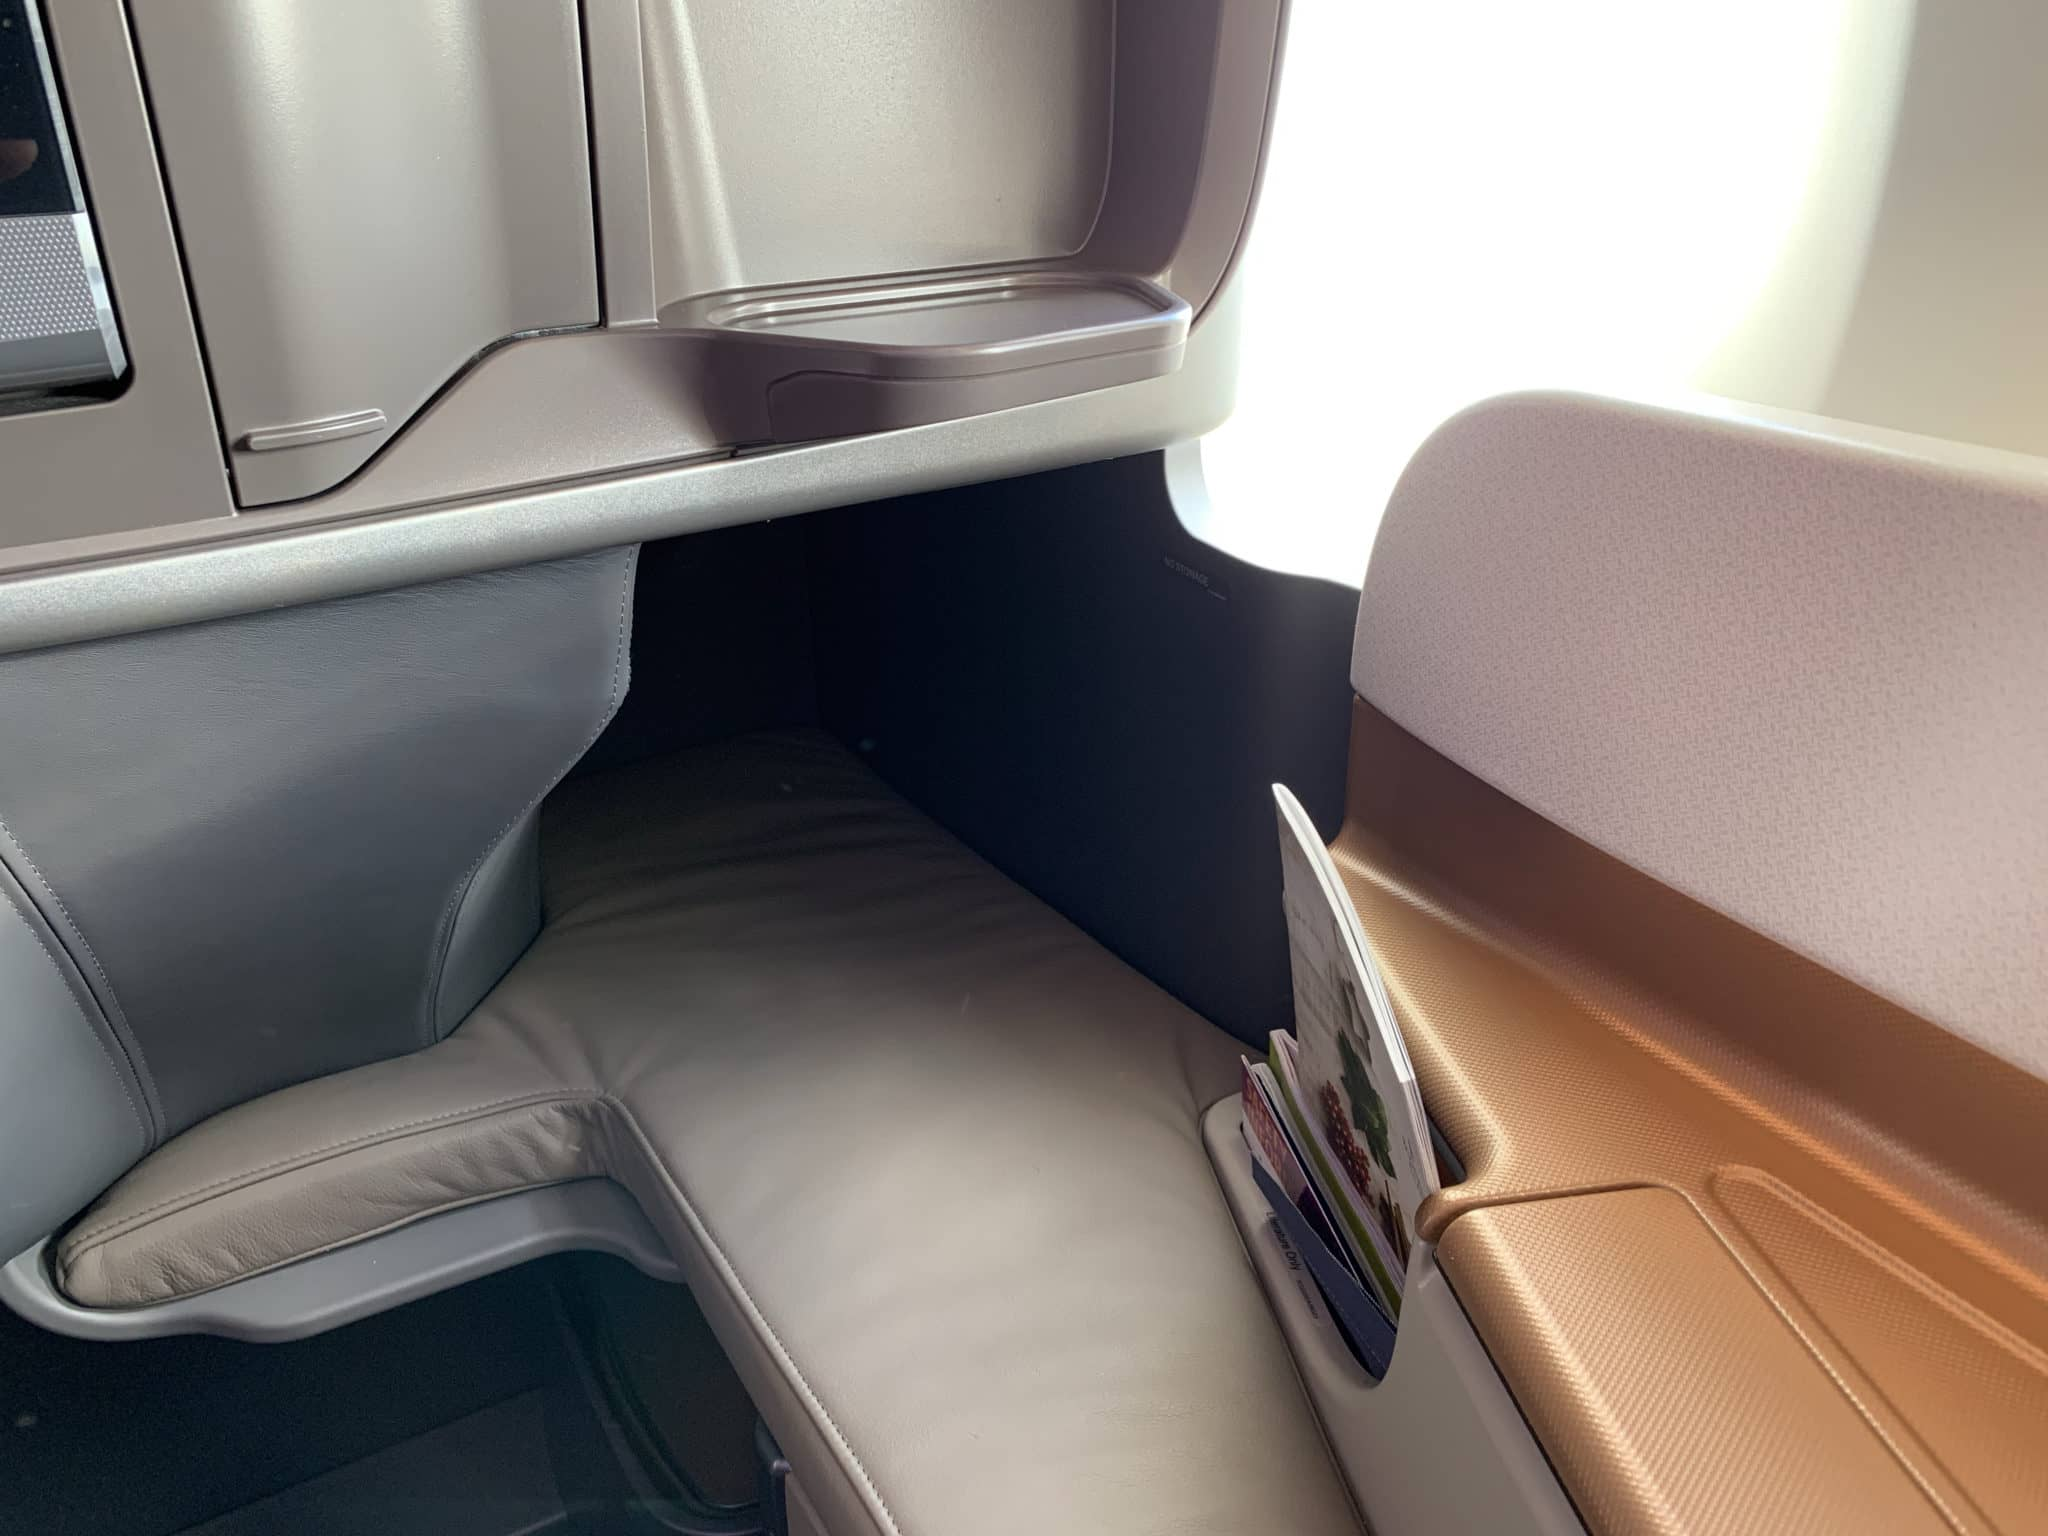 Singapore Airlines Business Class A350-900ULR Fußraum